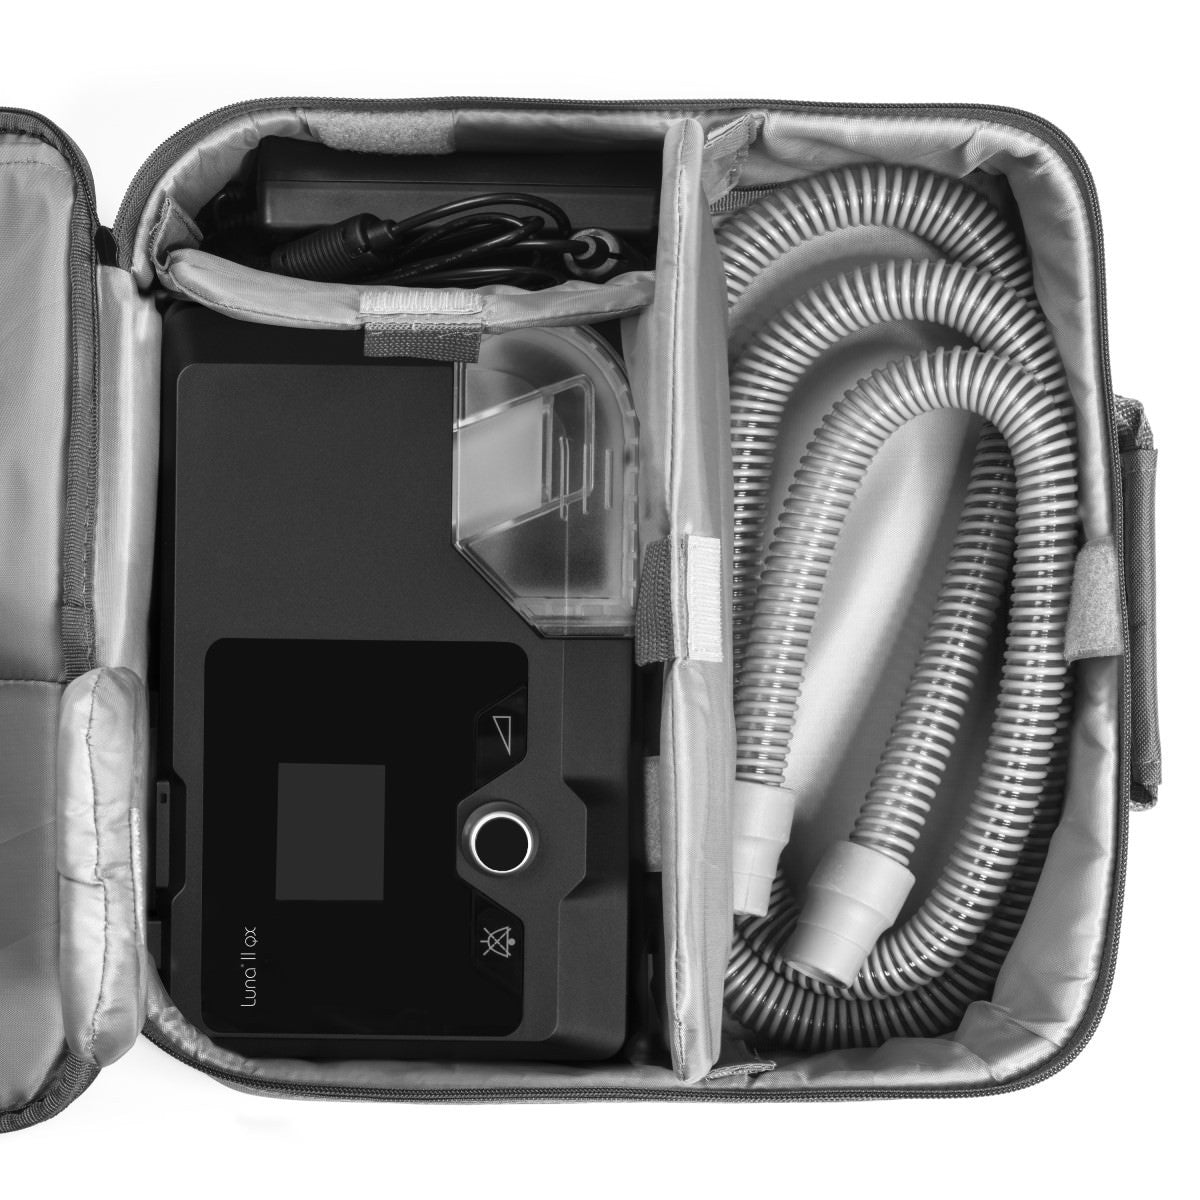 Top view of carrying case with Luna II QX Auto CPAP Machine, swivel tube connector and battery adapter.